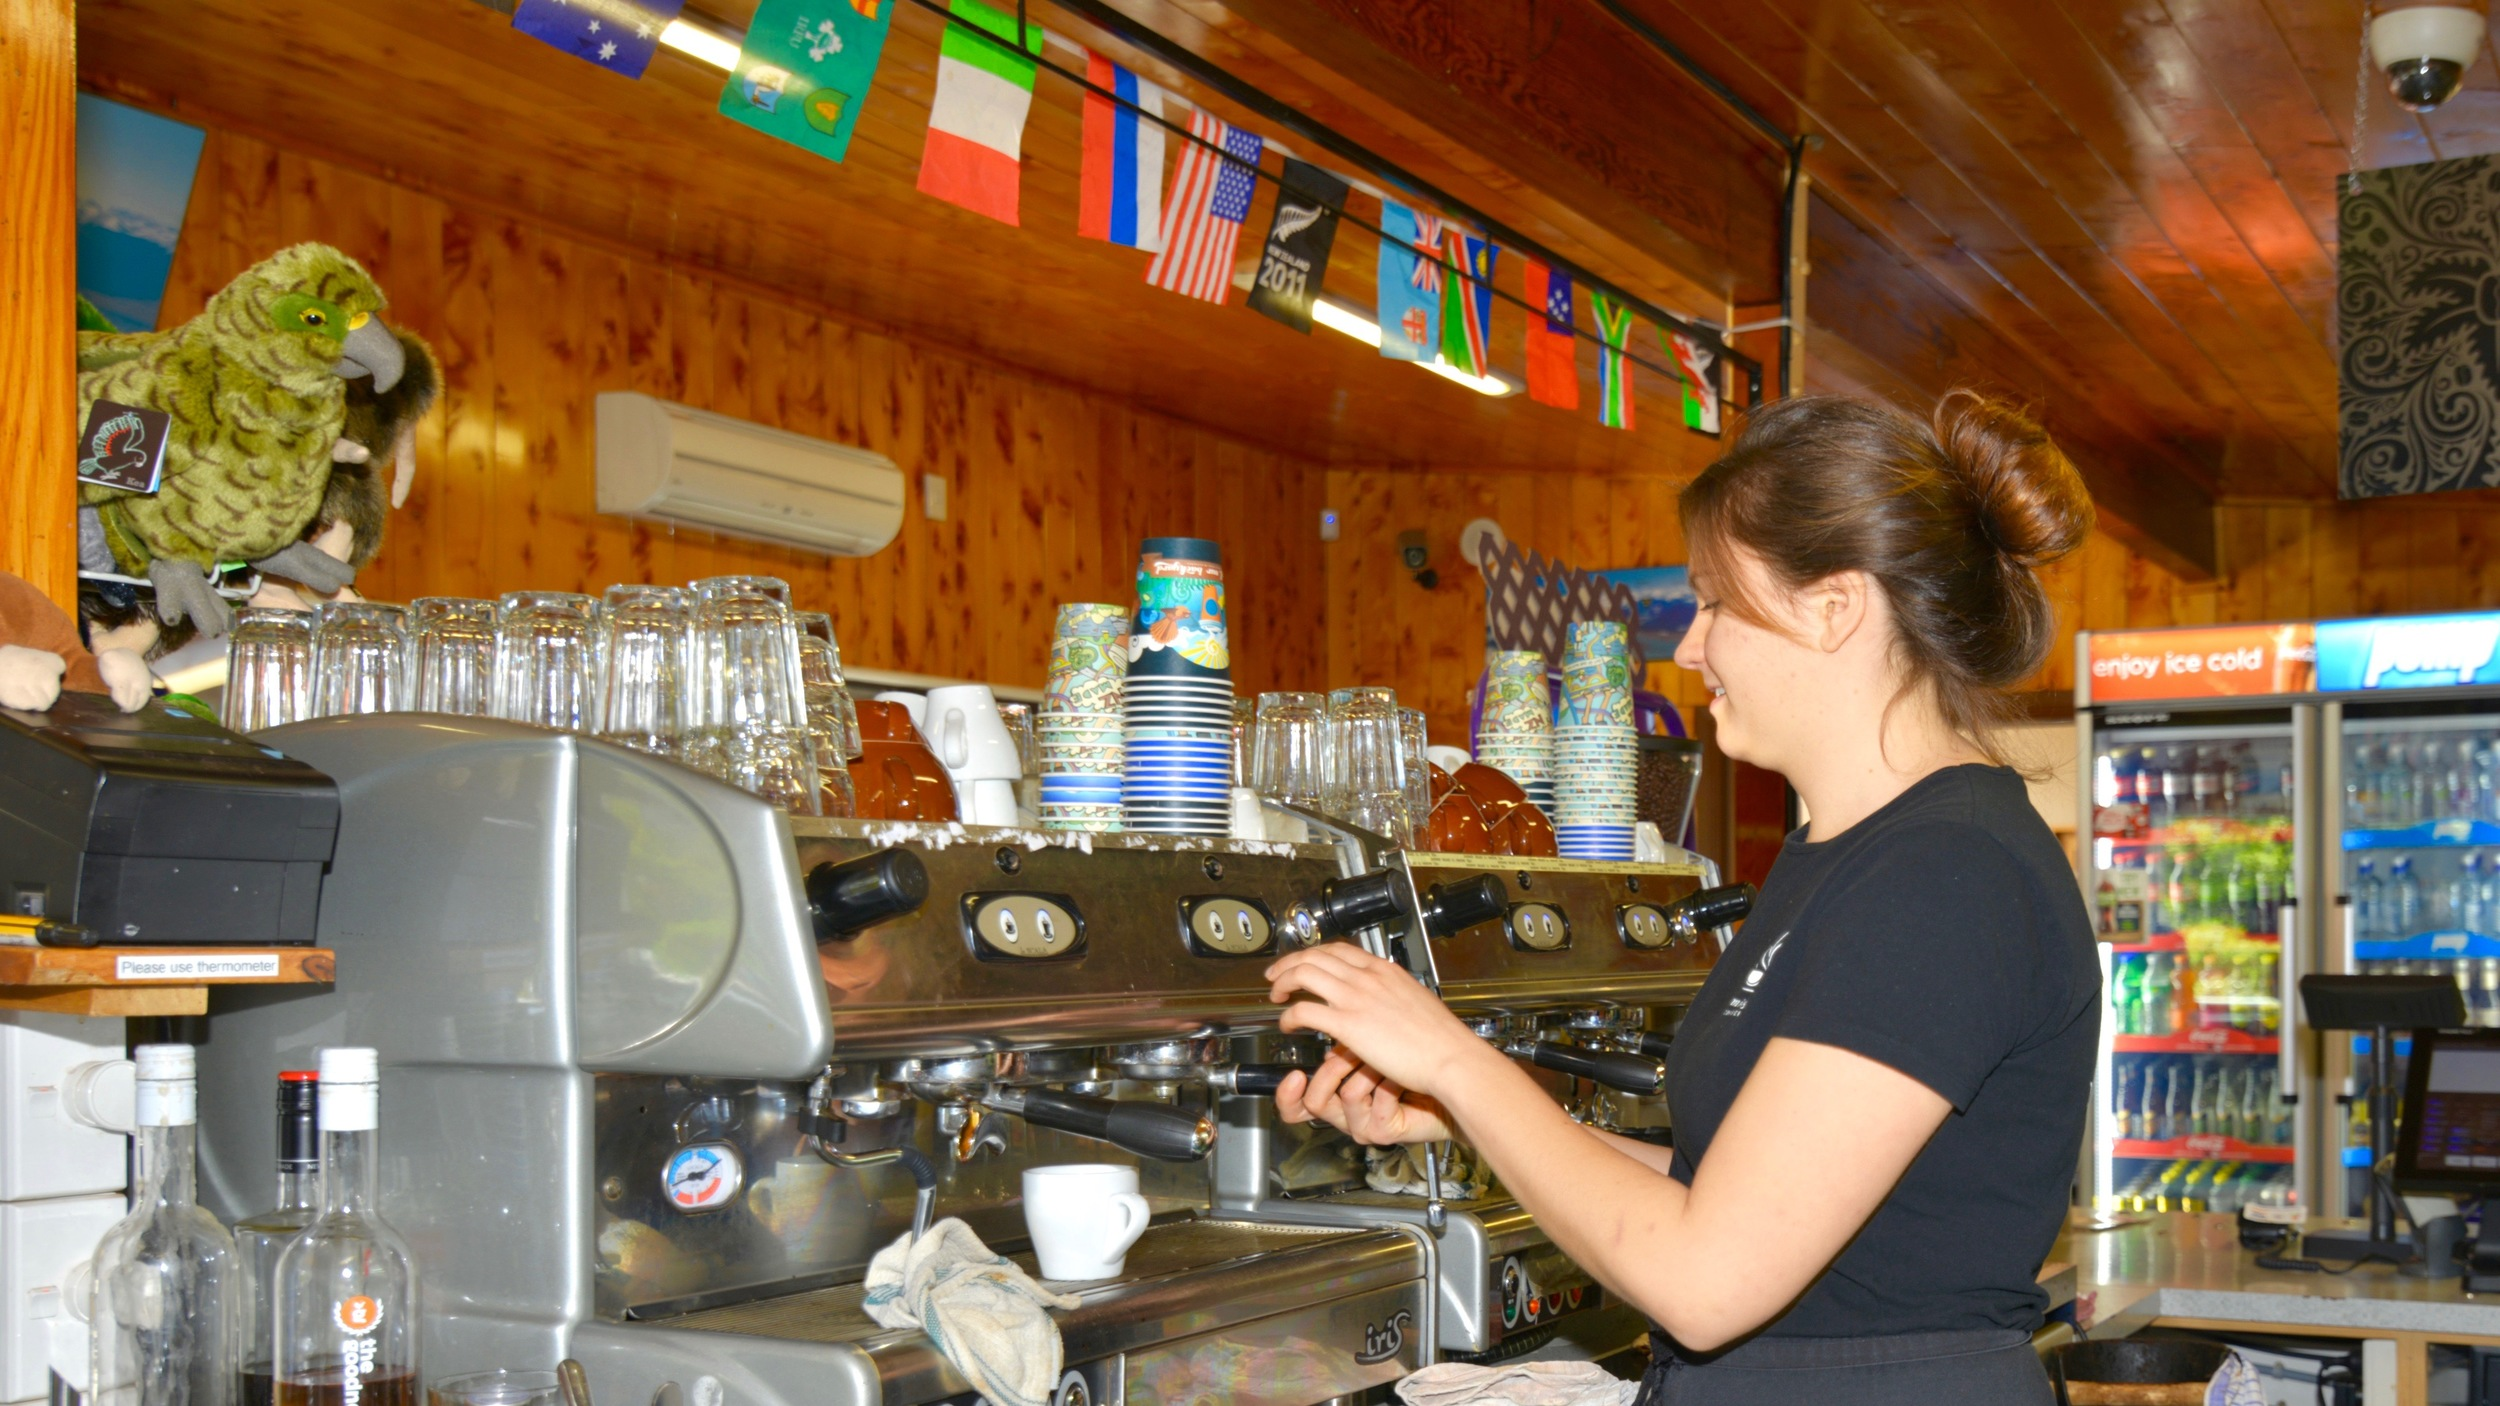 Our friendly team members make excellent coffee